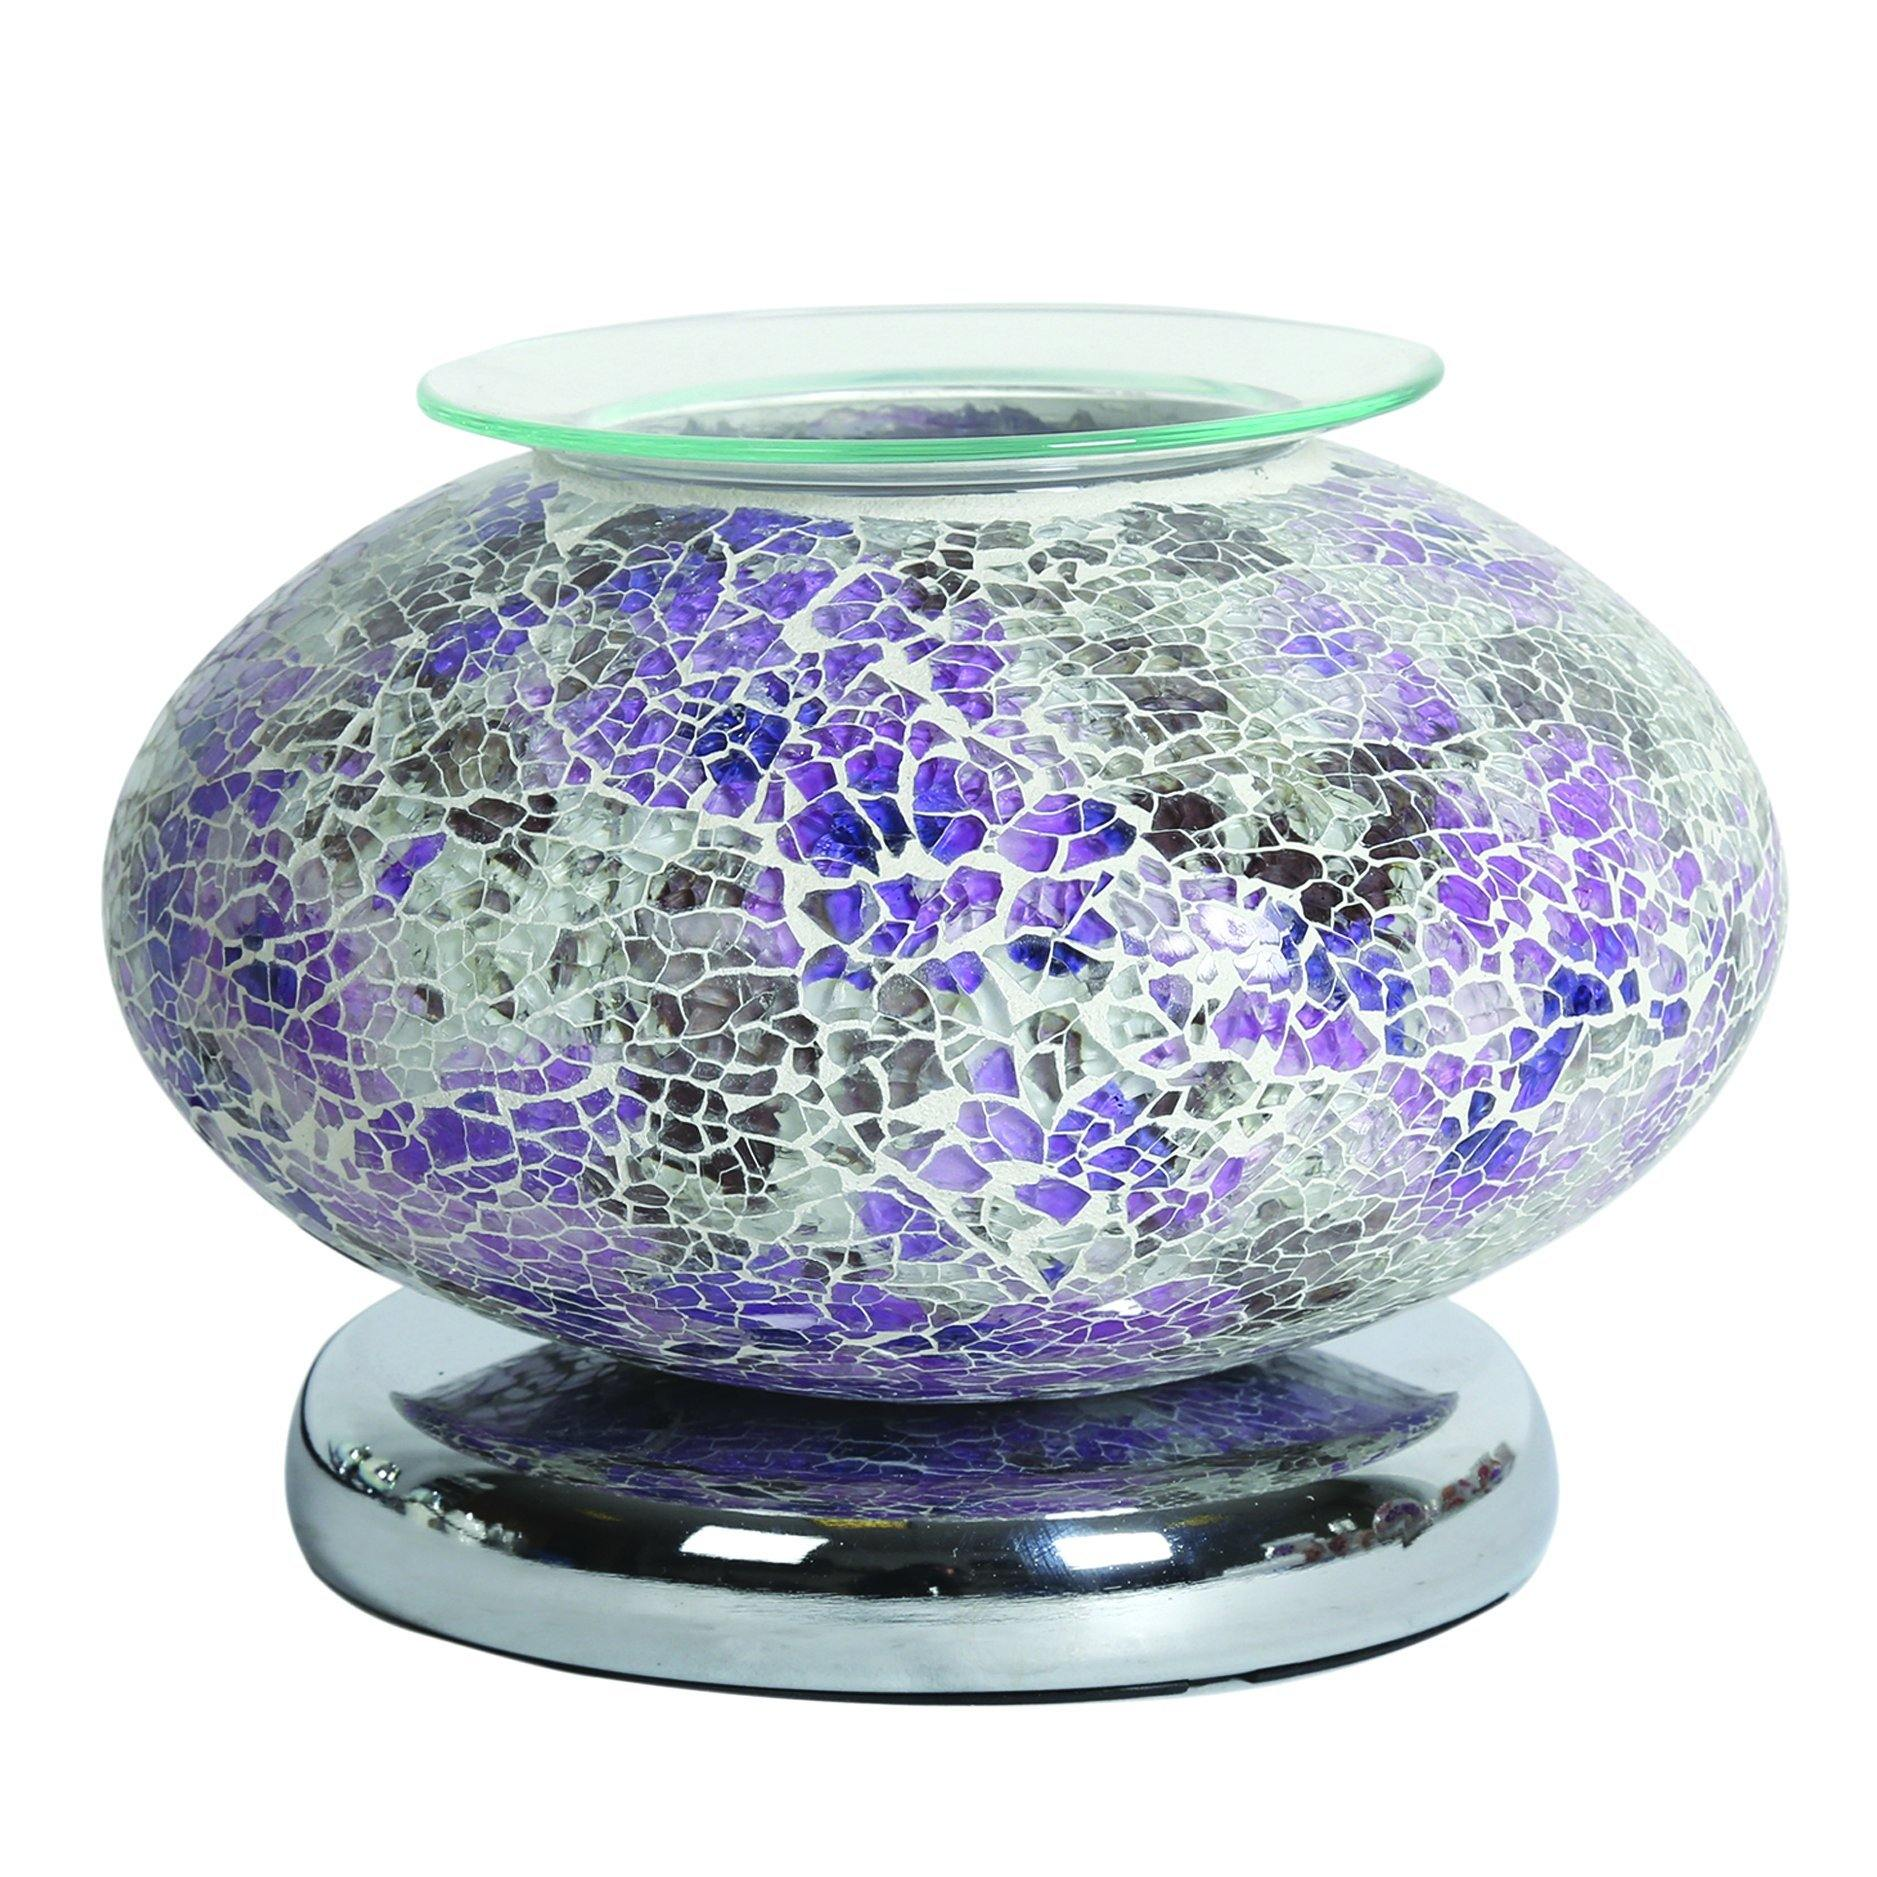 Aroma Accessories Electric Wax Melt Burner Touch - Purple Mosaic Ellipse - TOSYS Candles and Gifts